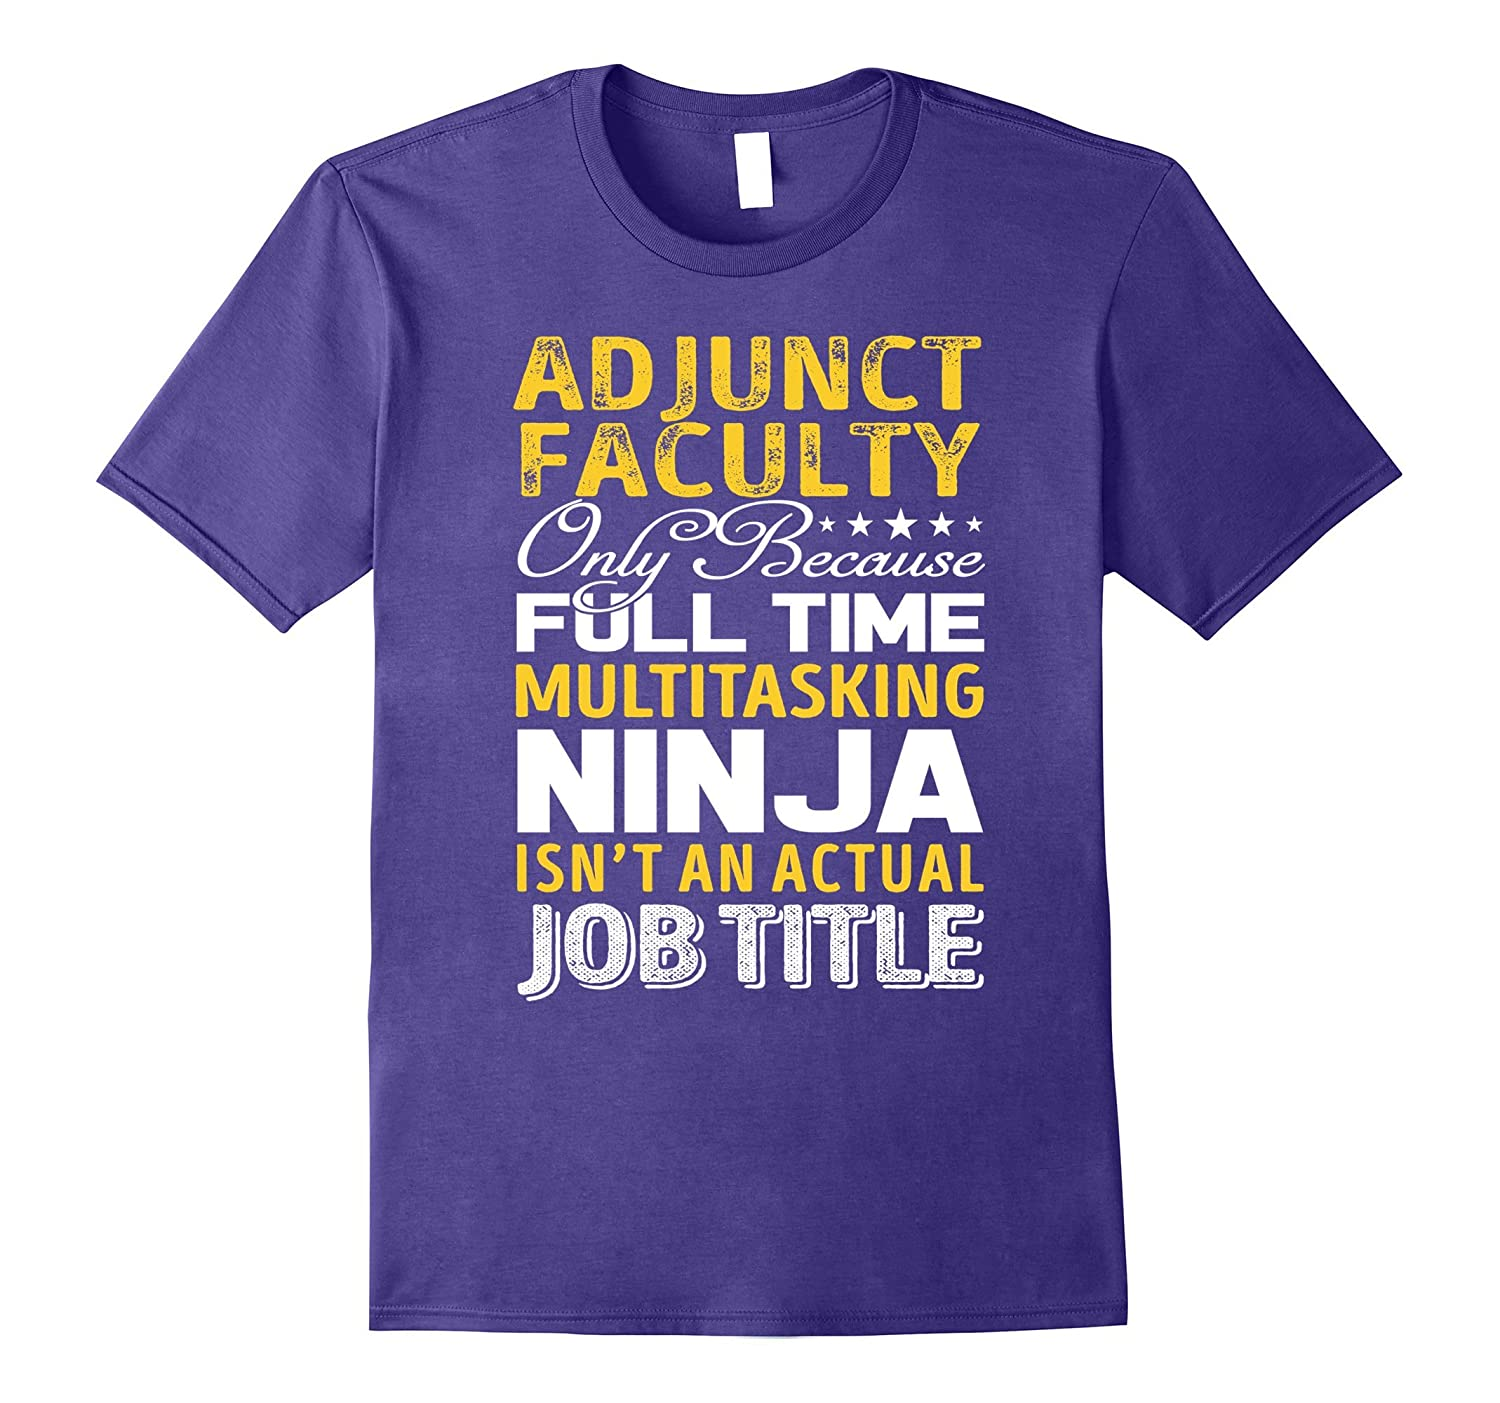 Adjunct Faculty Is Not An Actual Job Title TShirt-TJ